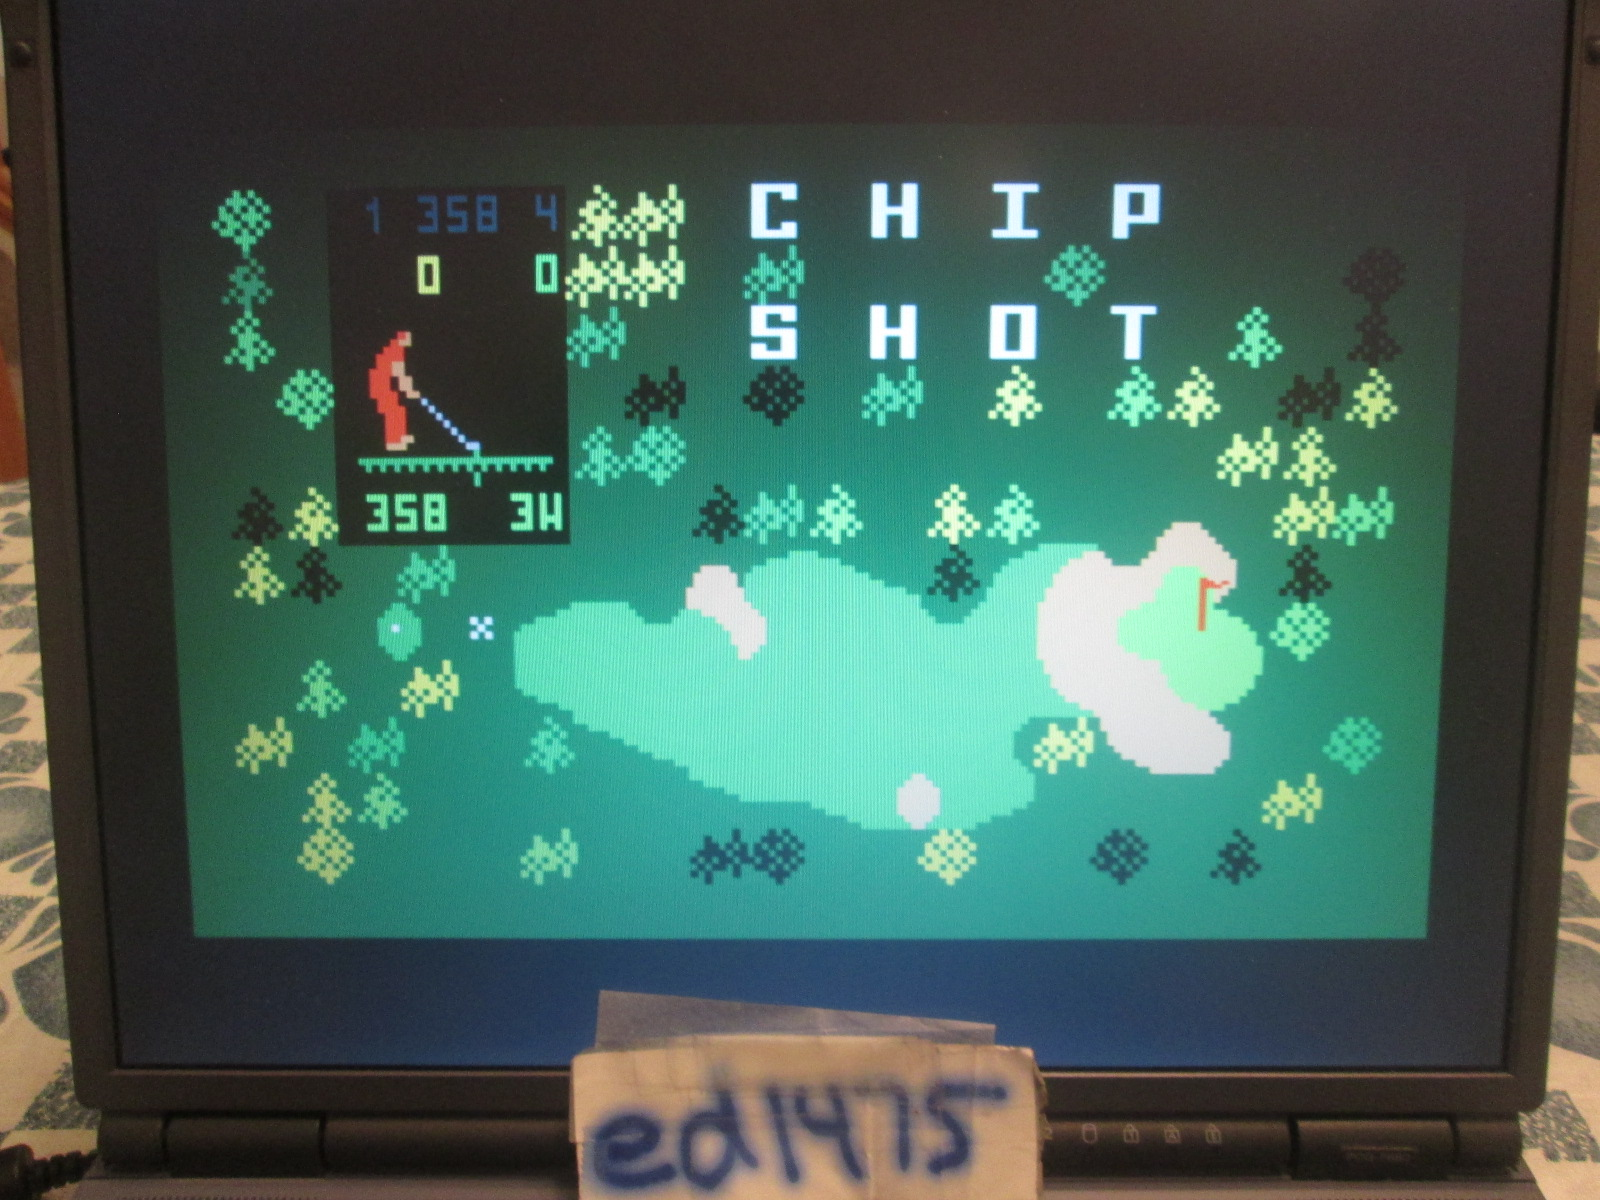 ed1475: Chip Shot: Super Pro Golf [INTV Tourney: 18 Holes] (Intellivision Emulated) 108 points on 2018-10-17 22:38:45